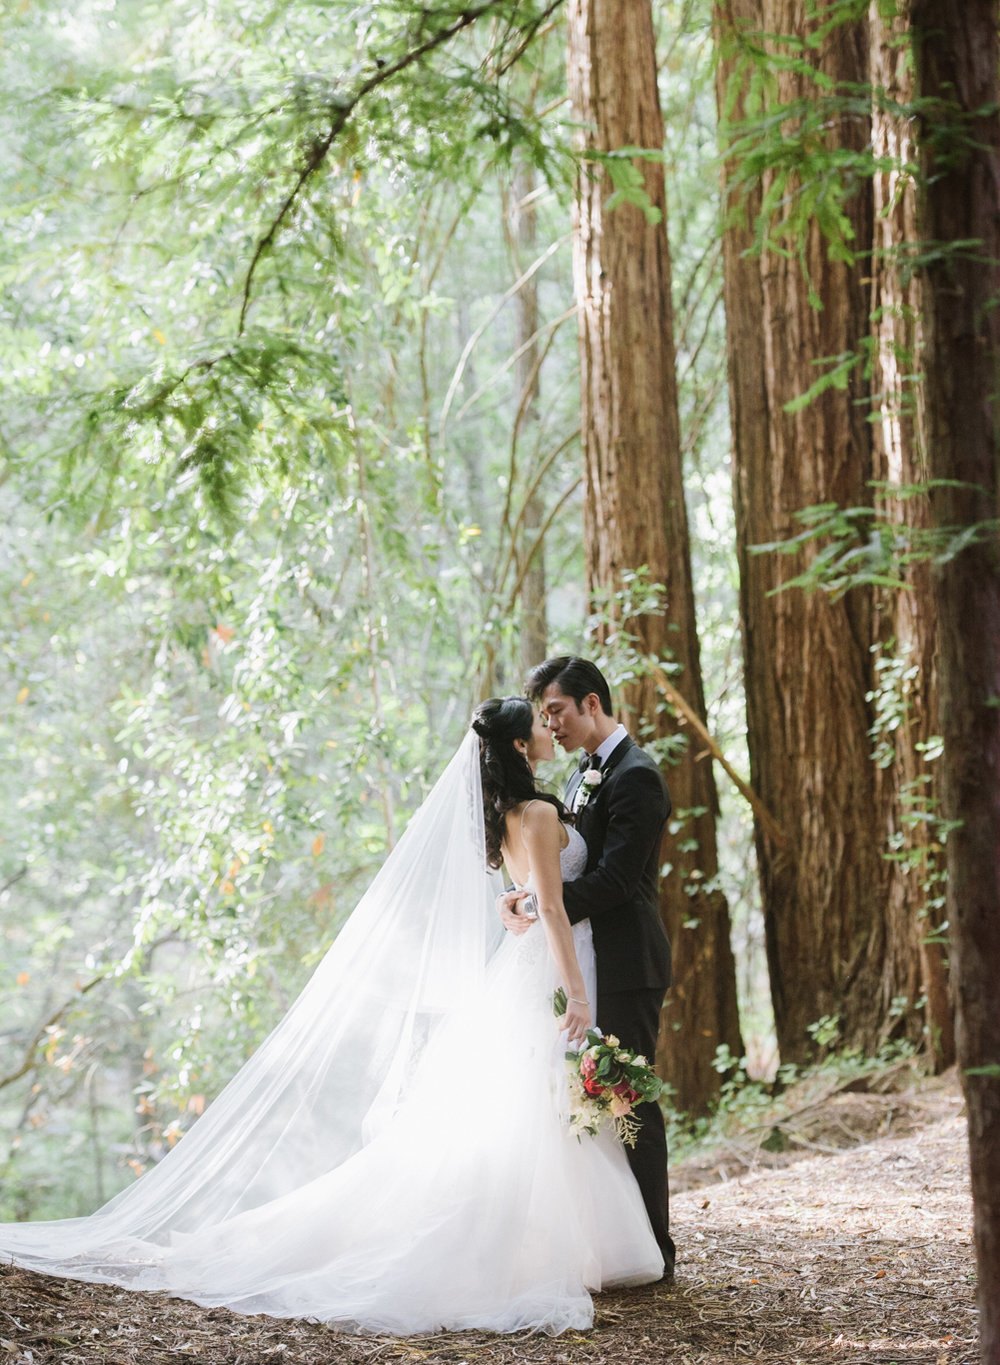 The bride and groom share a moment among the redwoods in Carmel, California after the wedding ceremony; Sylvie Gil Photography